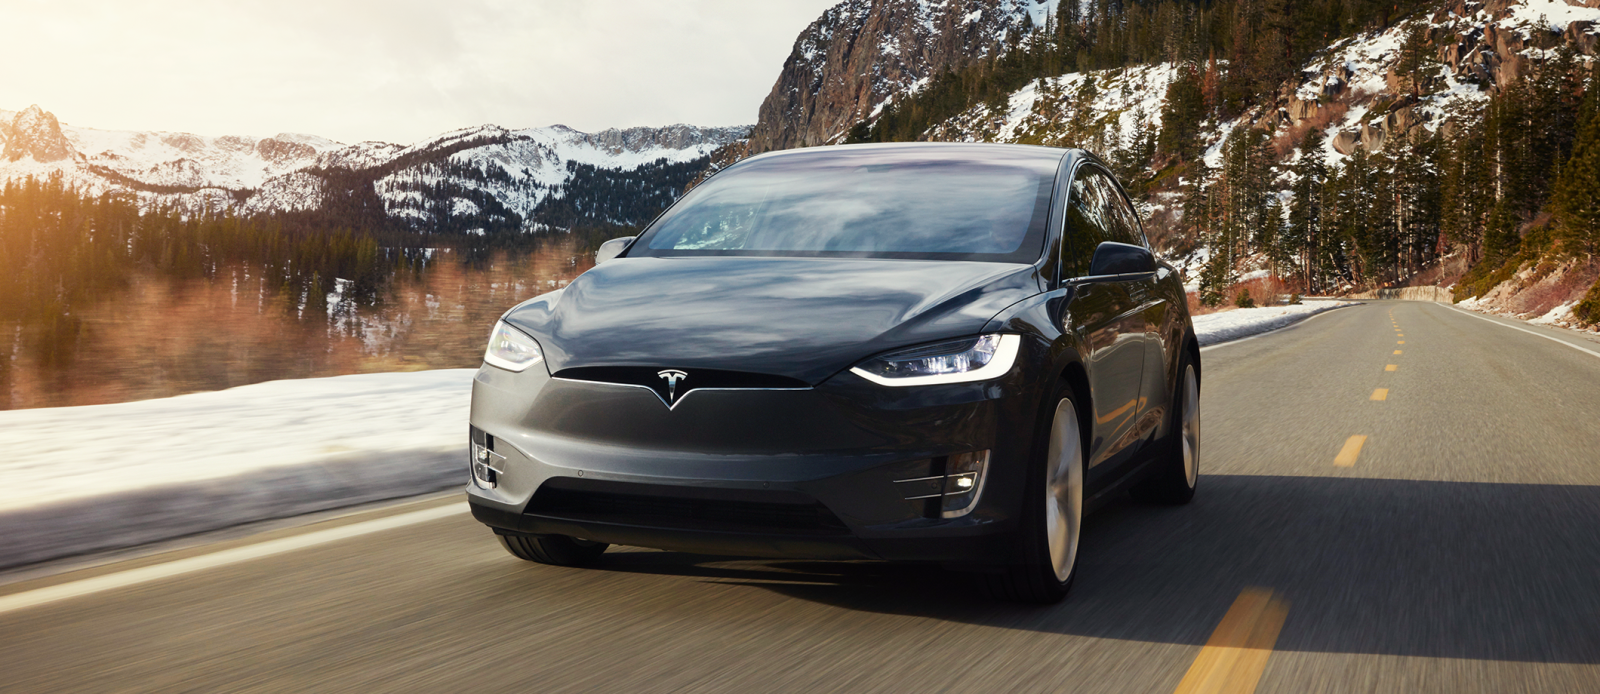 Tesla Reduces The Price Of Model X Adds More Standard Options To